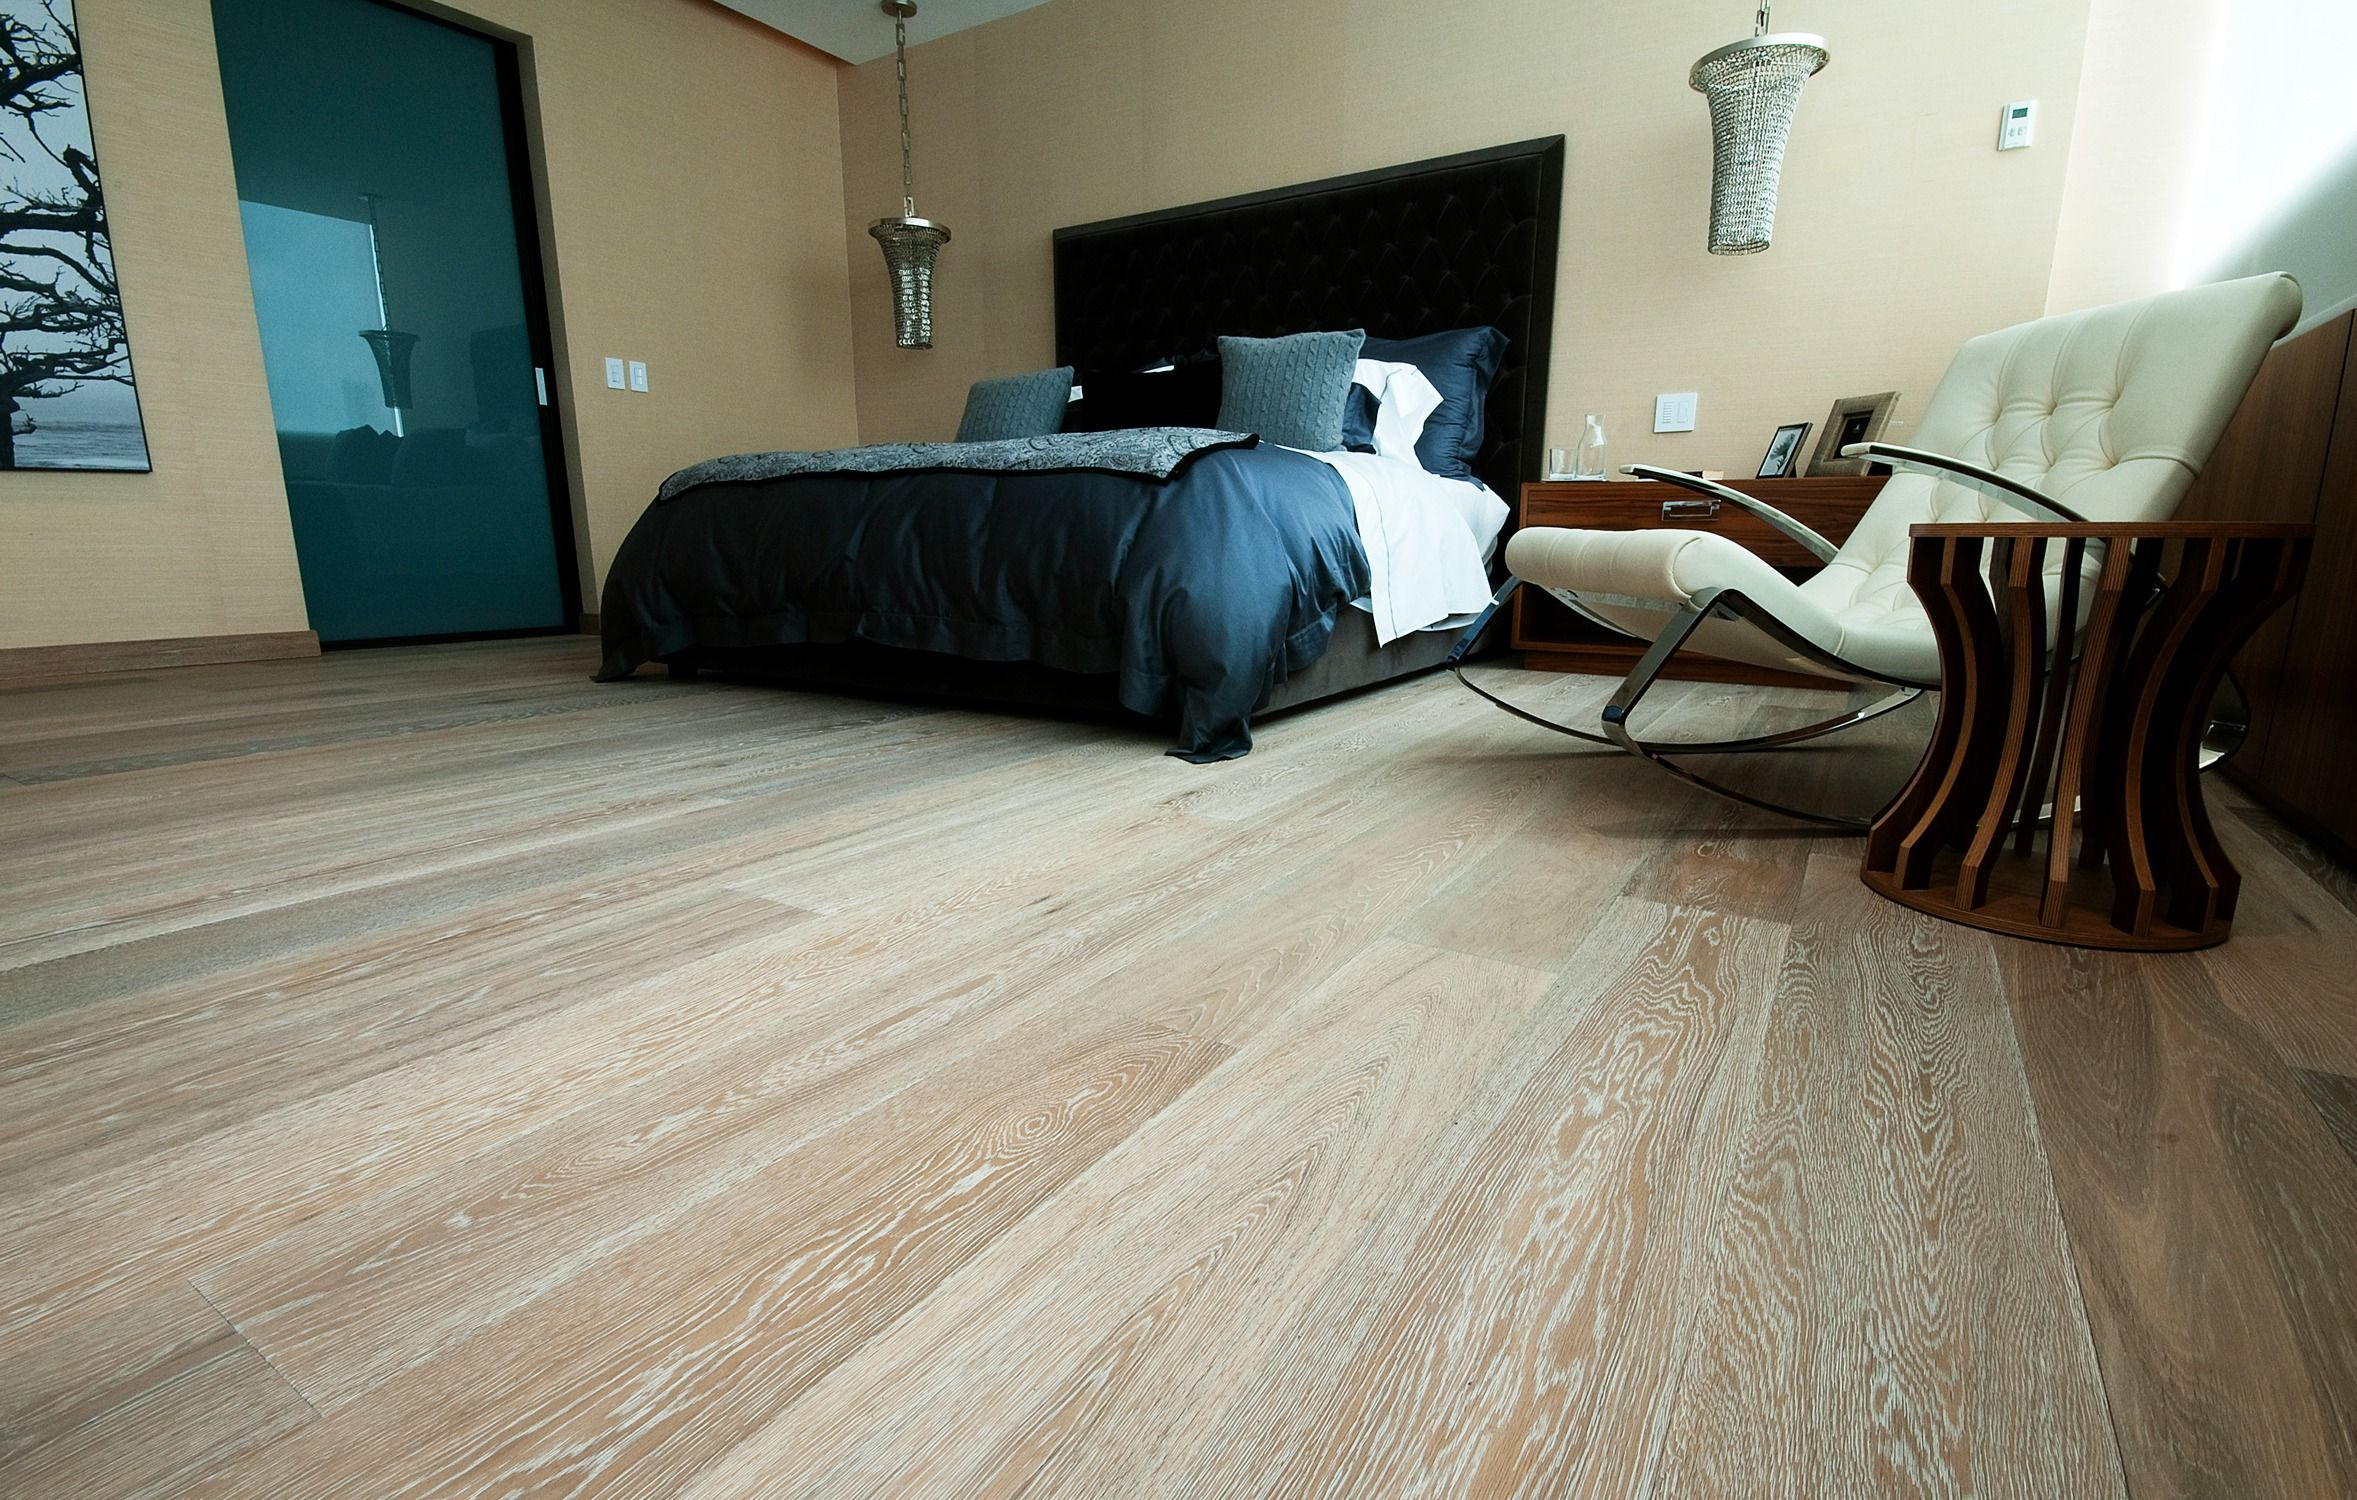 Duchateau vernal lugano hardwood flooring woodflooring du chateau flooring white washed